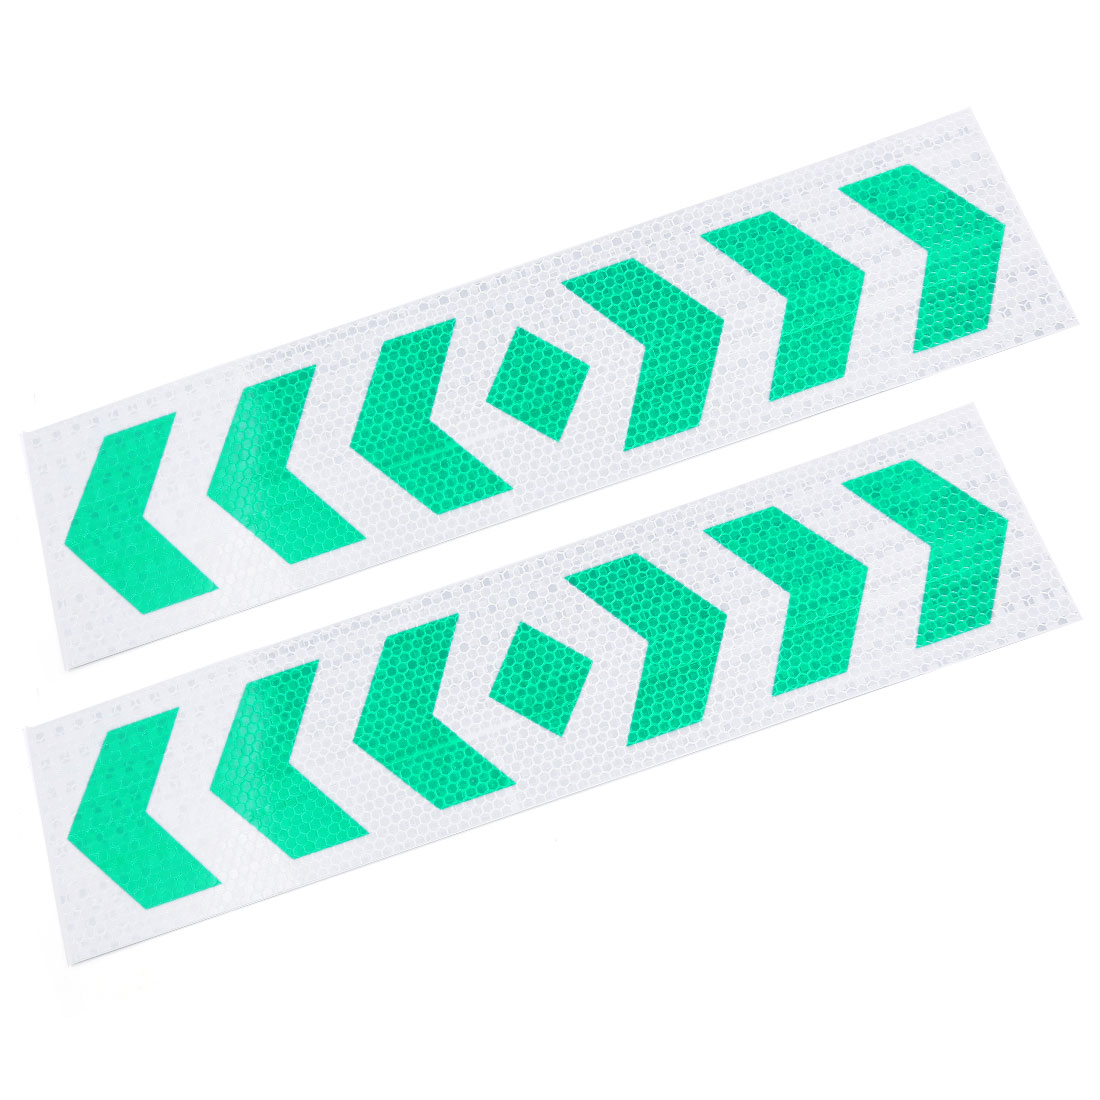 2pcs 39cm x 9.5cm Arrows Print Self Adhesive Car Auto Reflective Warning Sign Stickers Decal Green Sliver Tone